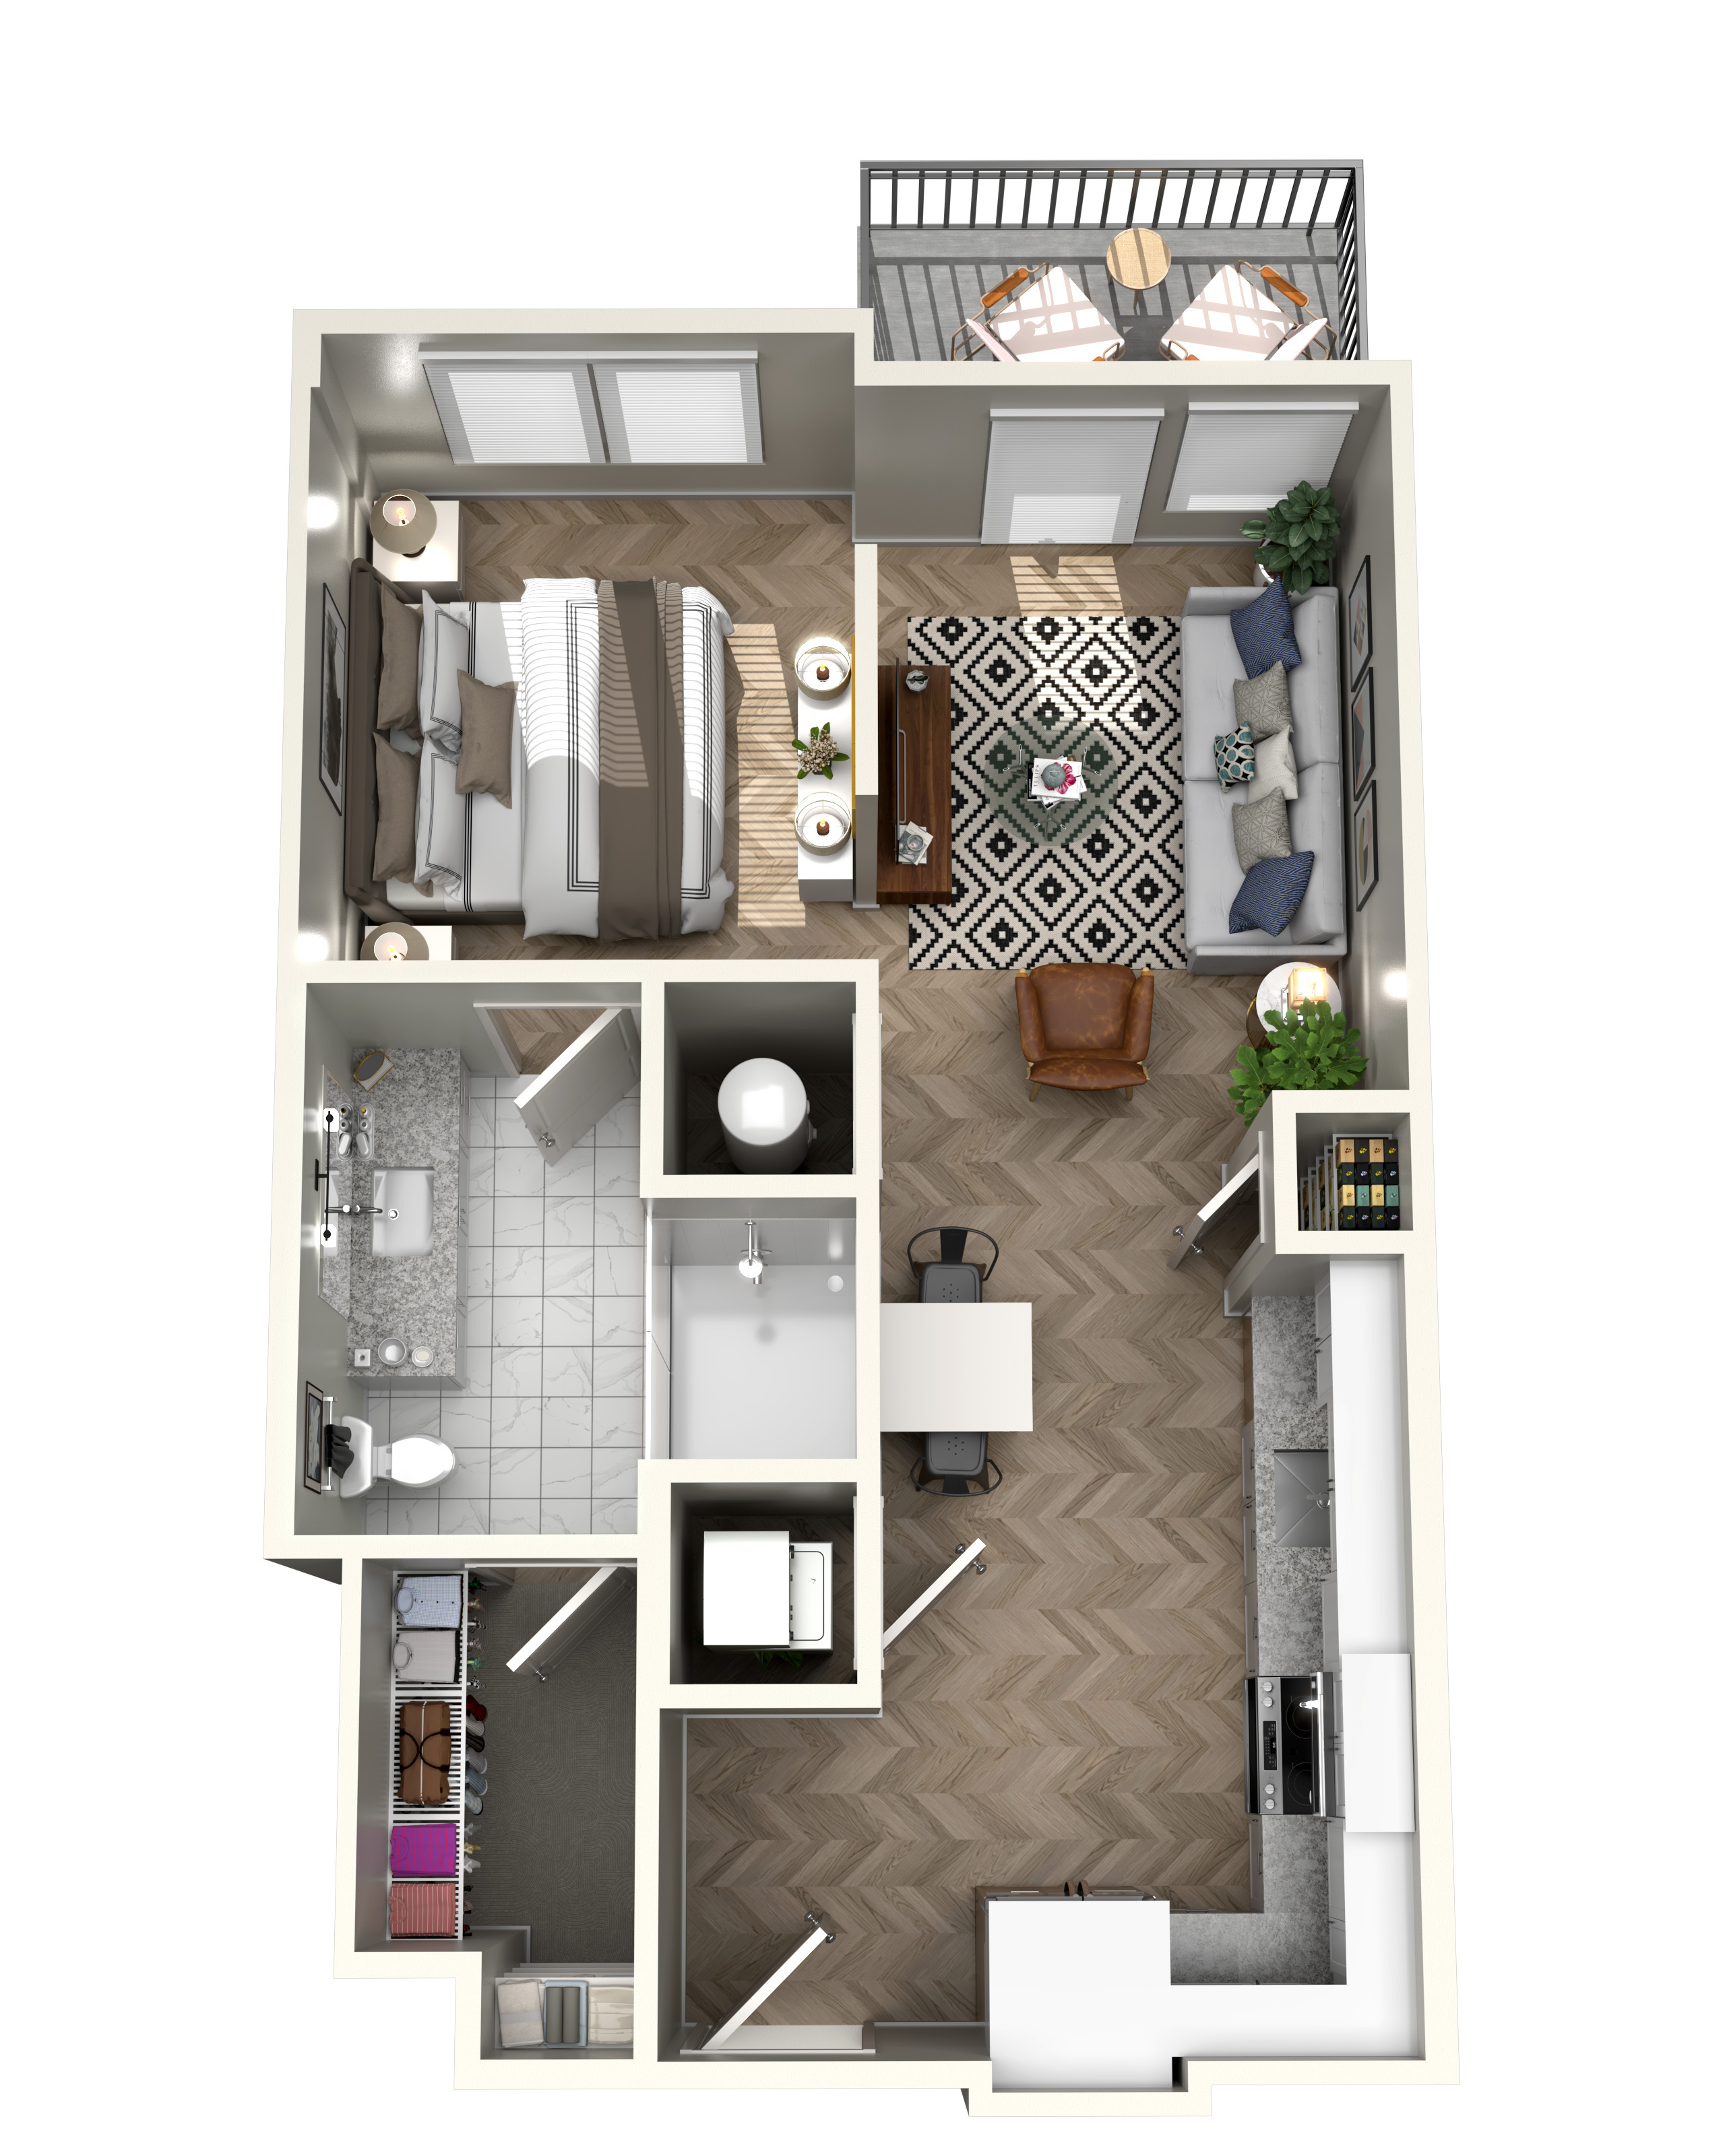 The Heights at Northwinds - Floorplan - S1